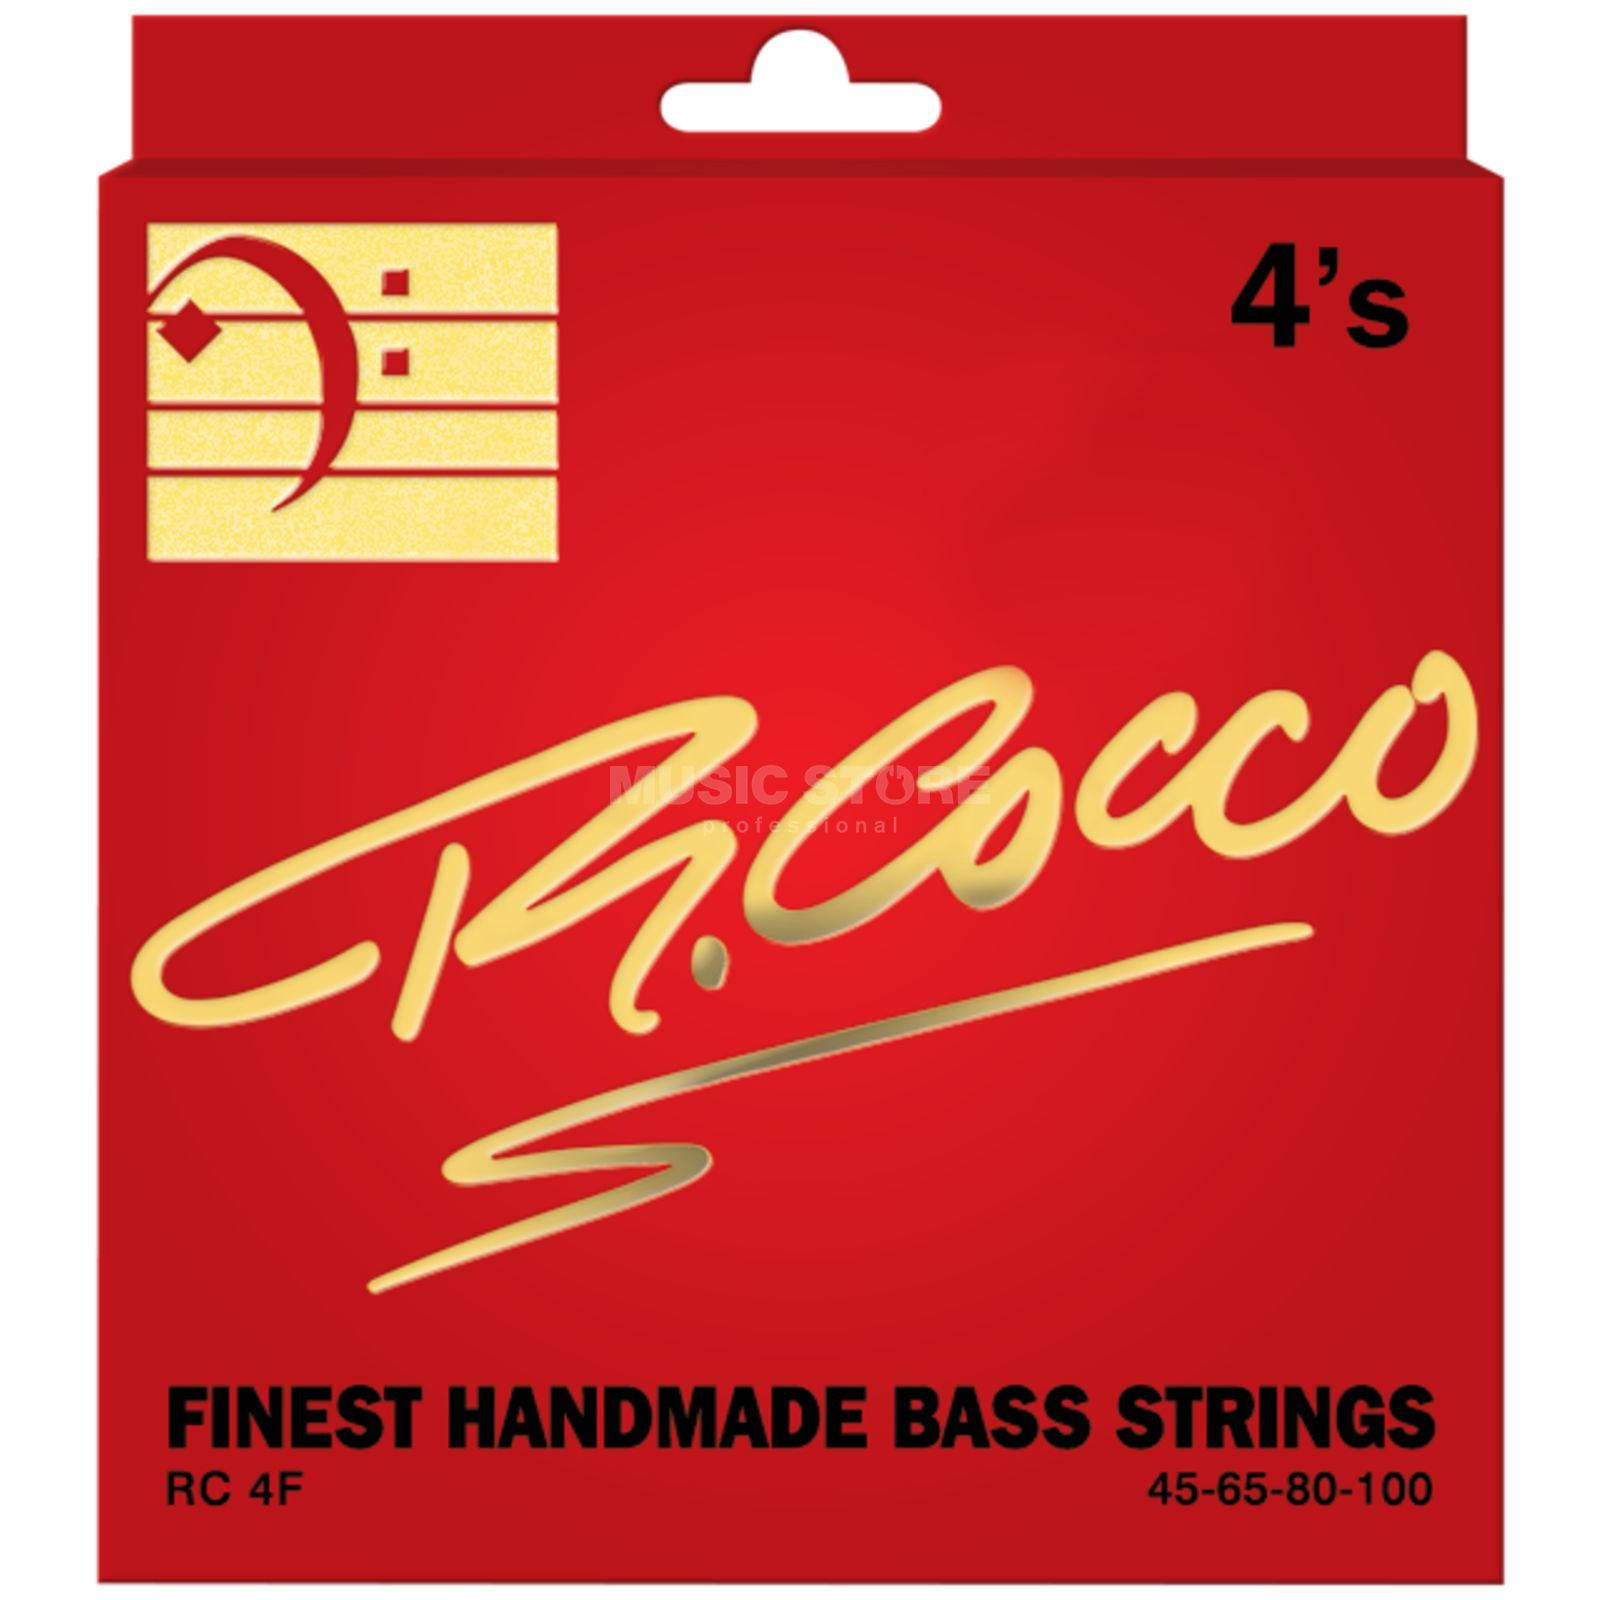 Cocco RC4F Bass Strings 45-100 4 Set, 45-65-80-100  Classic Wound Изображение товара